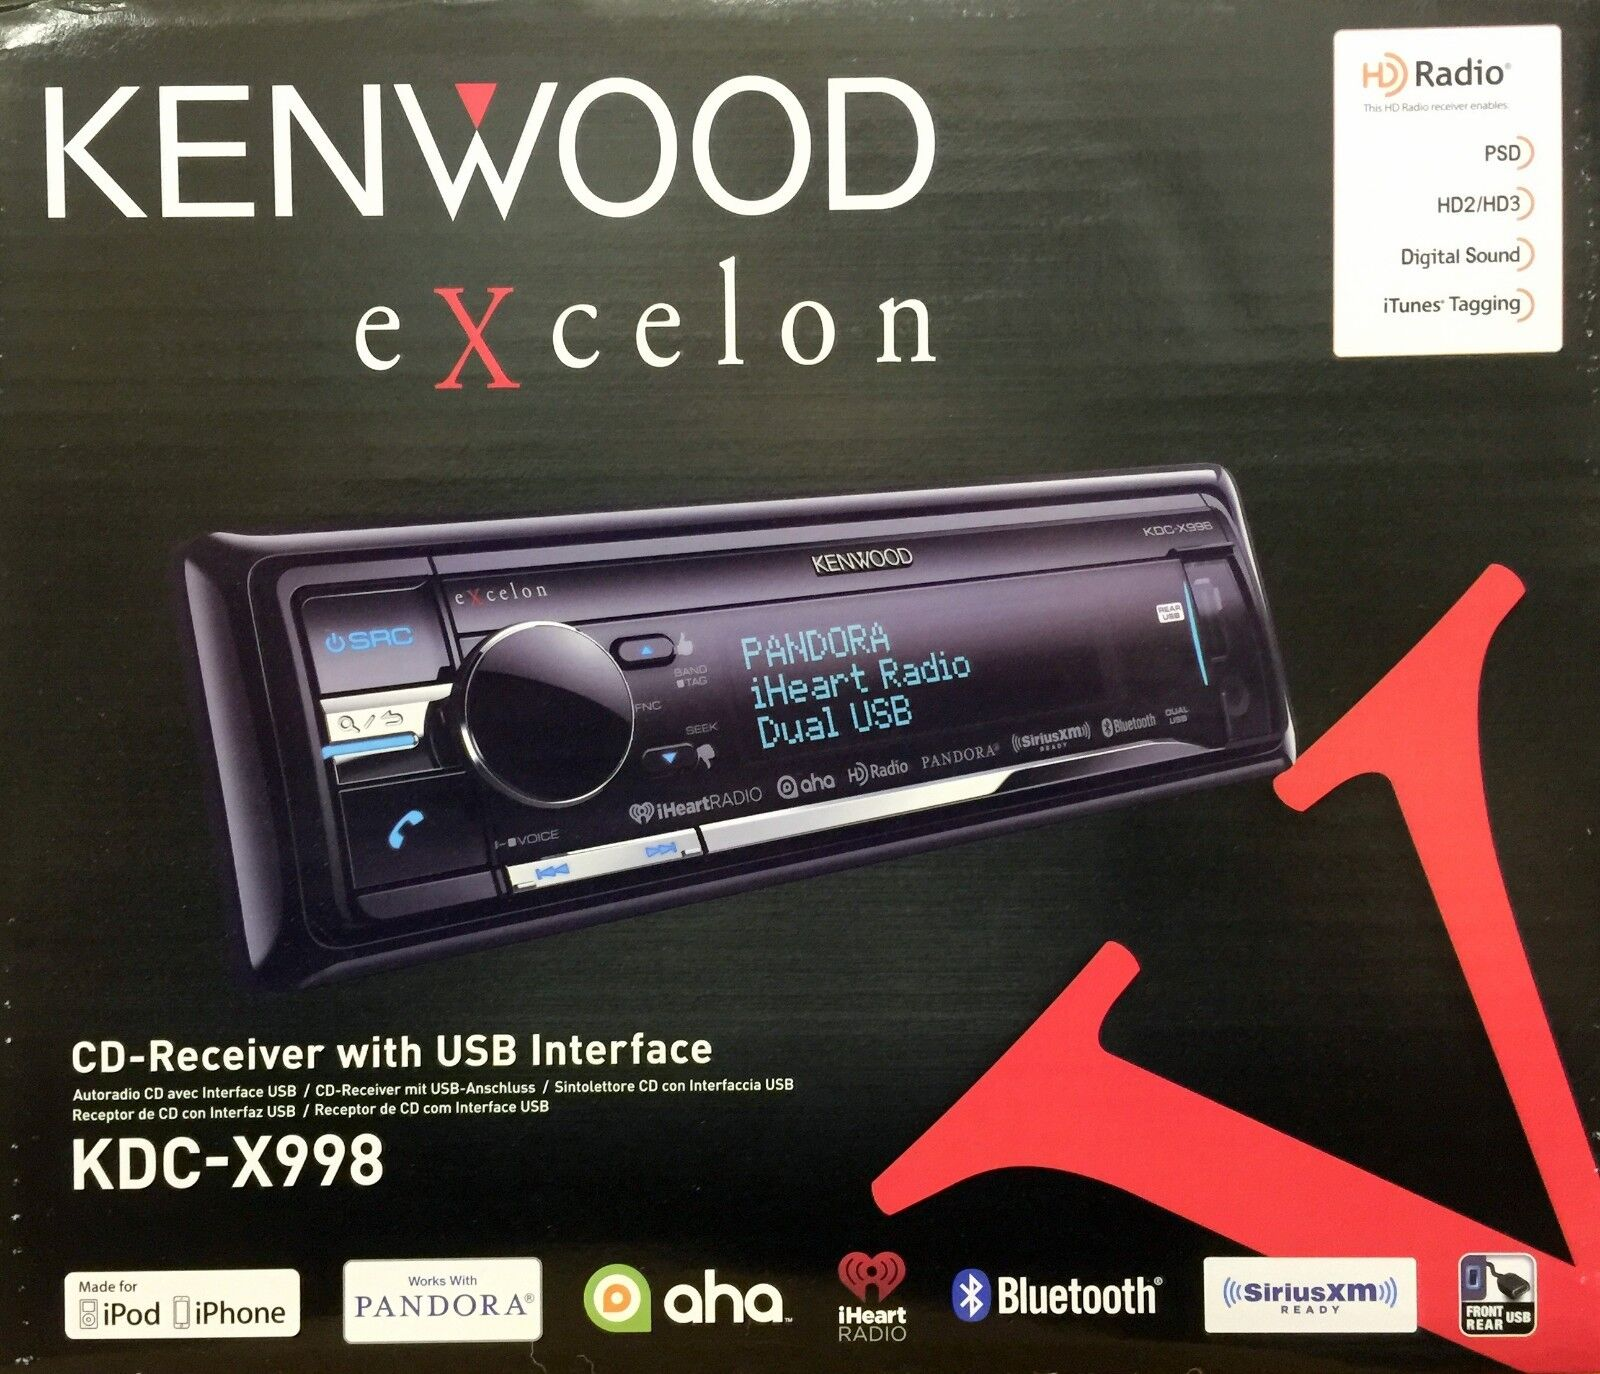 $189.90 - NEW KENWOOD KDC-X998 Single DIN Bluetooth CD/USB/MP3 Receiver With HD Radio